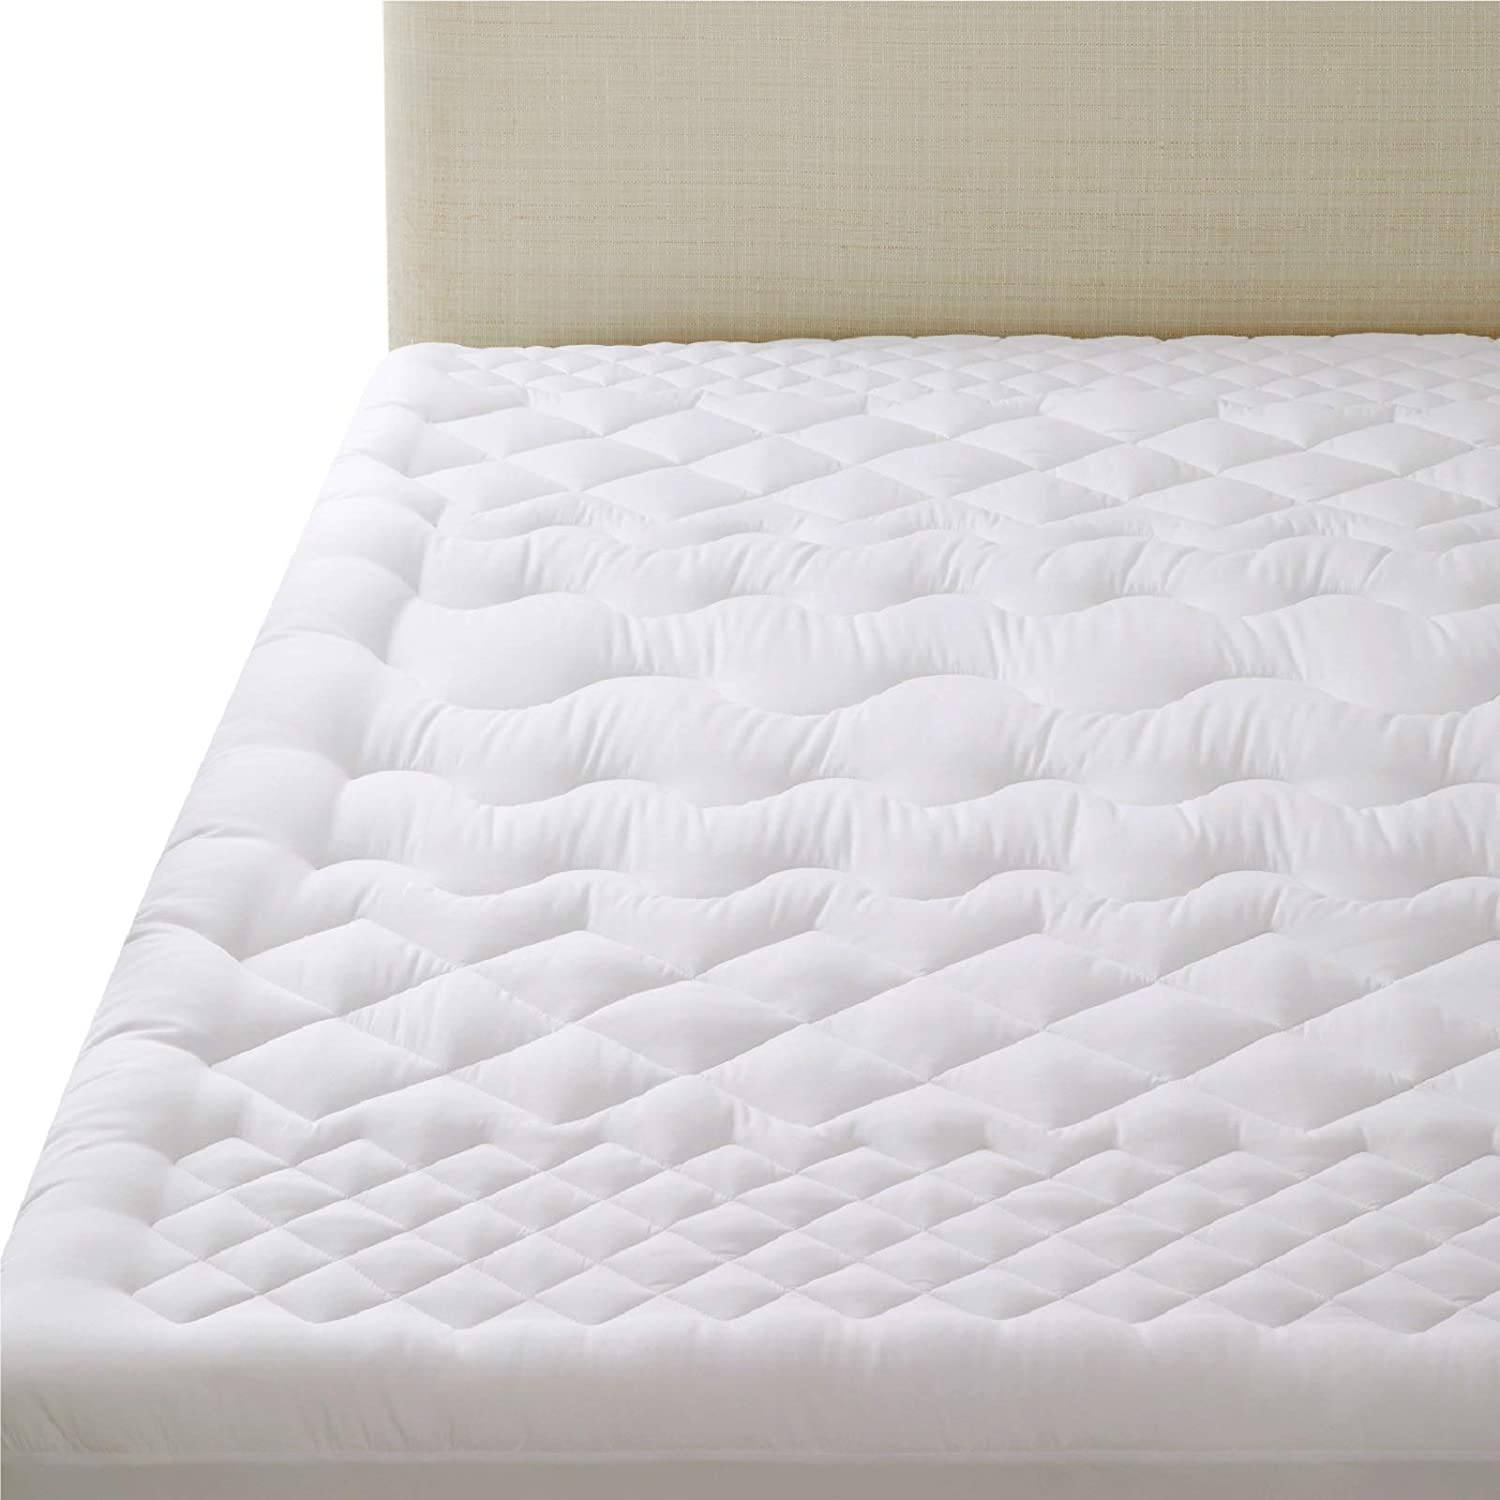 Bedsure Mattress Cover